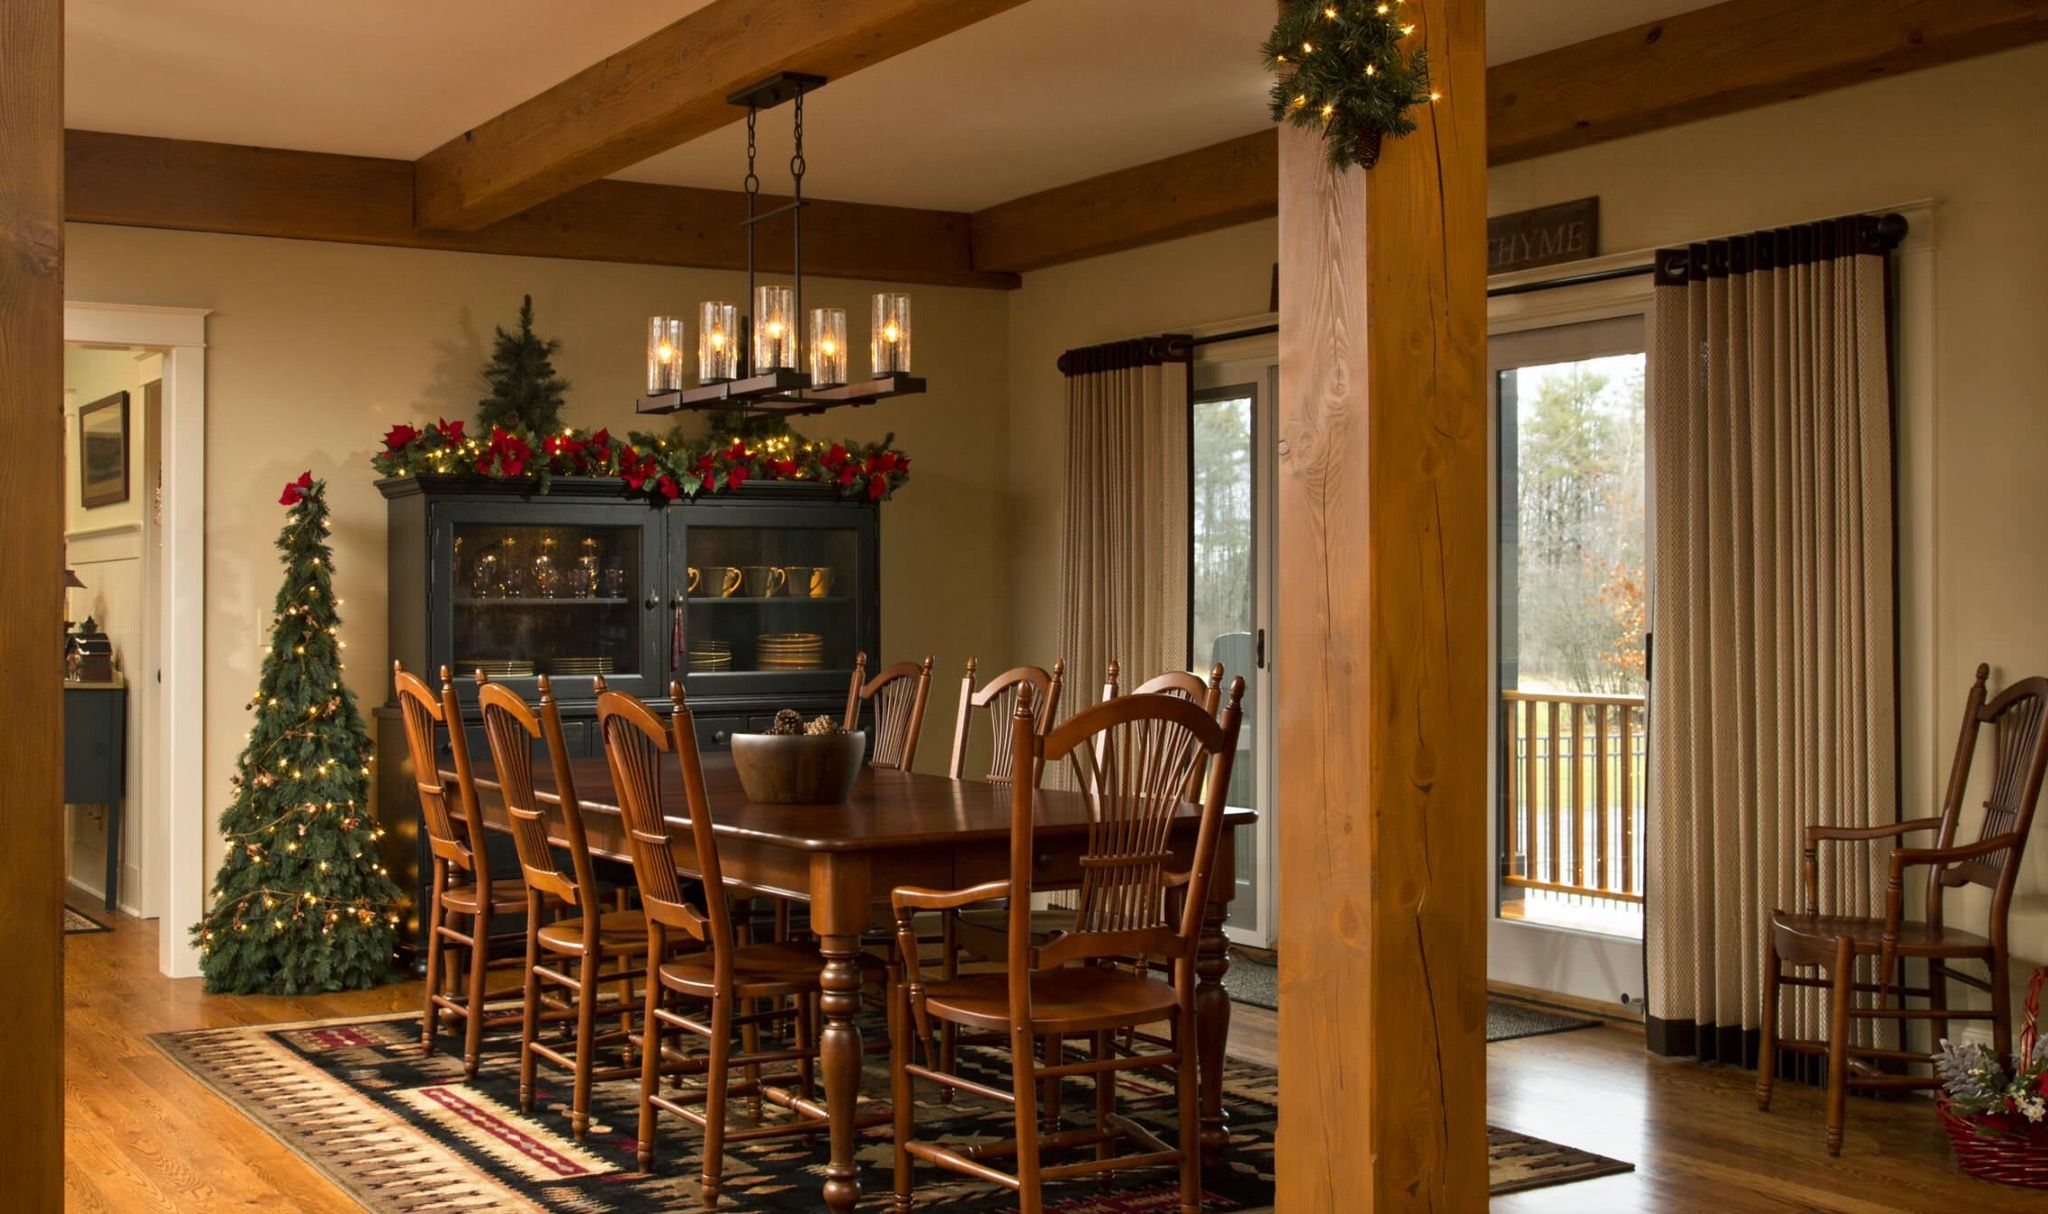 Pin by Lainey on Diningroom | Traditional dining rooms ...